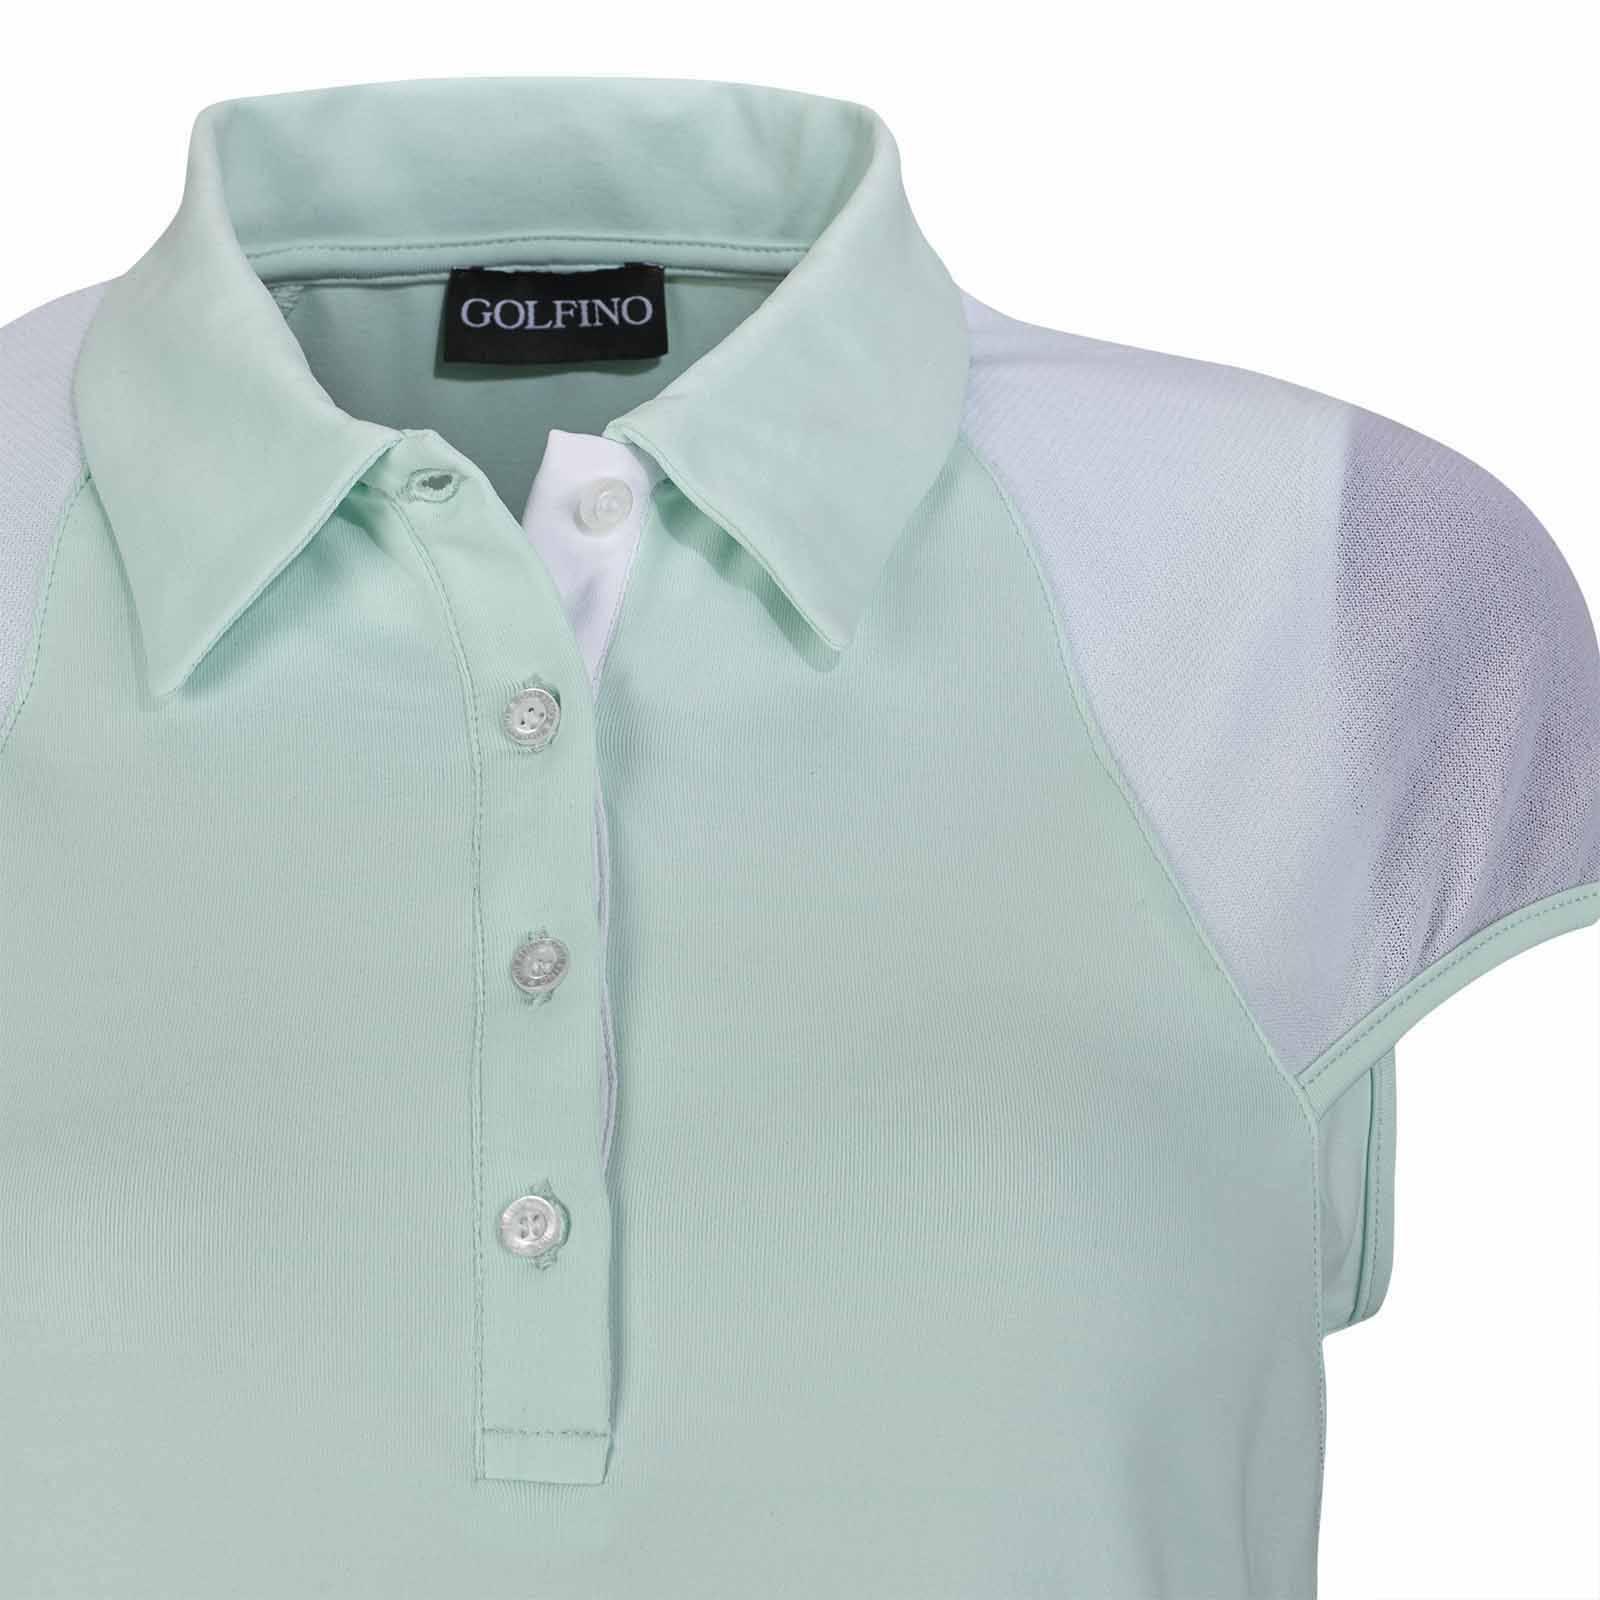 Damen Golf Poloshirt Extra Stretch Komfort mit Mesheinsätzen in Slim Fit